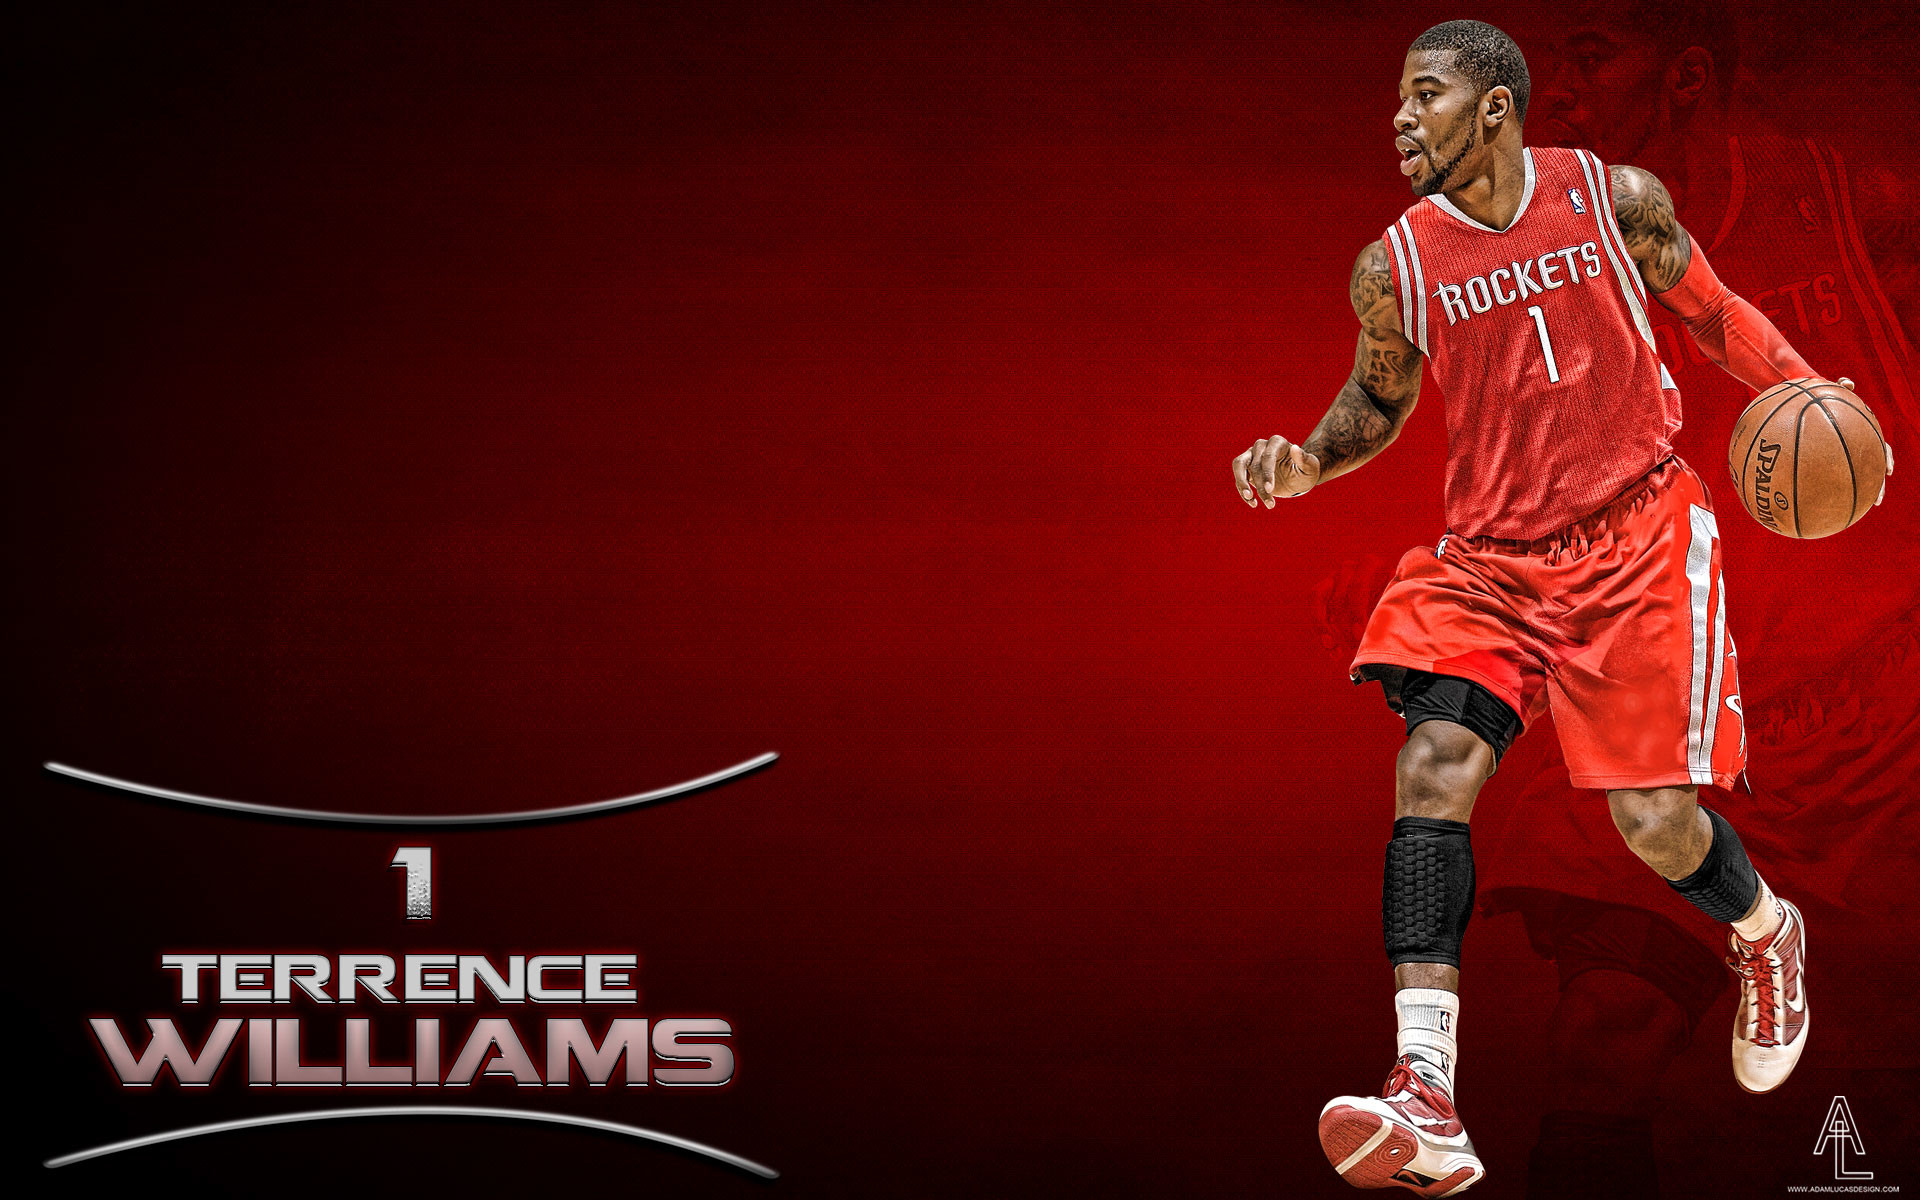 1920x1200 Terrence Williams Rockets  Widescreen Wallpaper